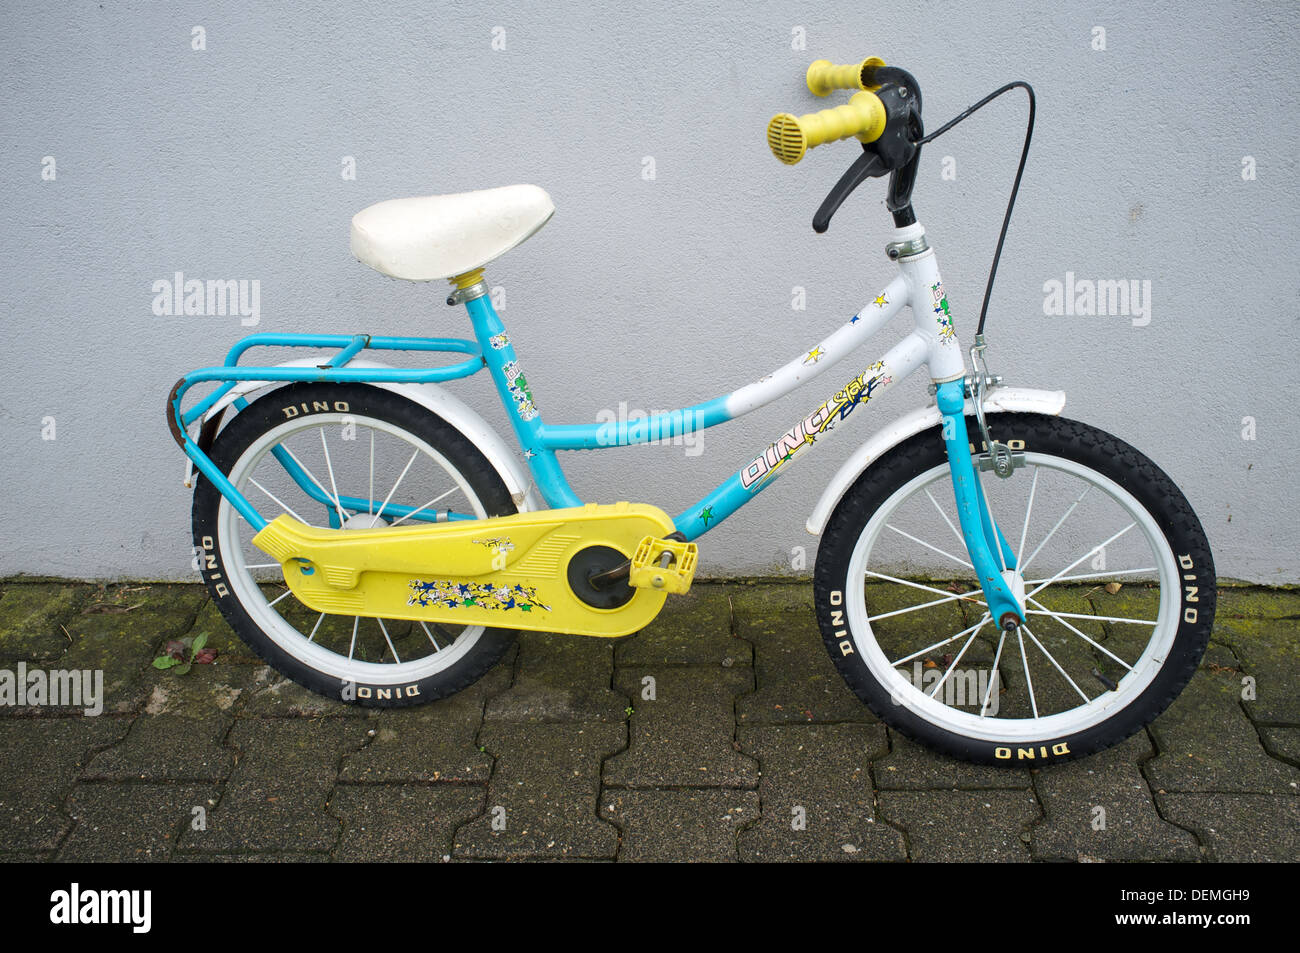 Dino childrens bicycle - Stock Image